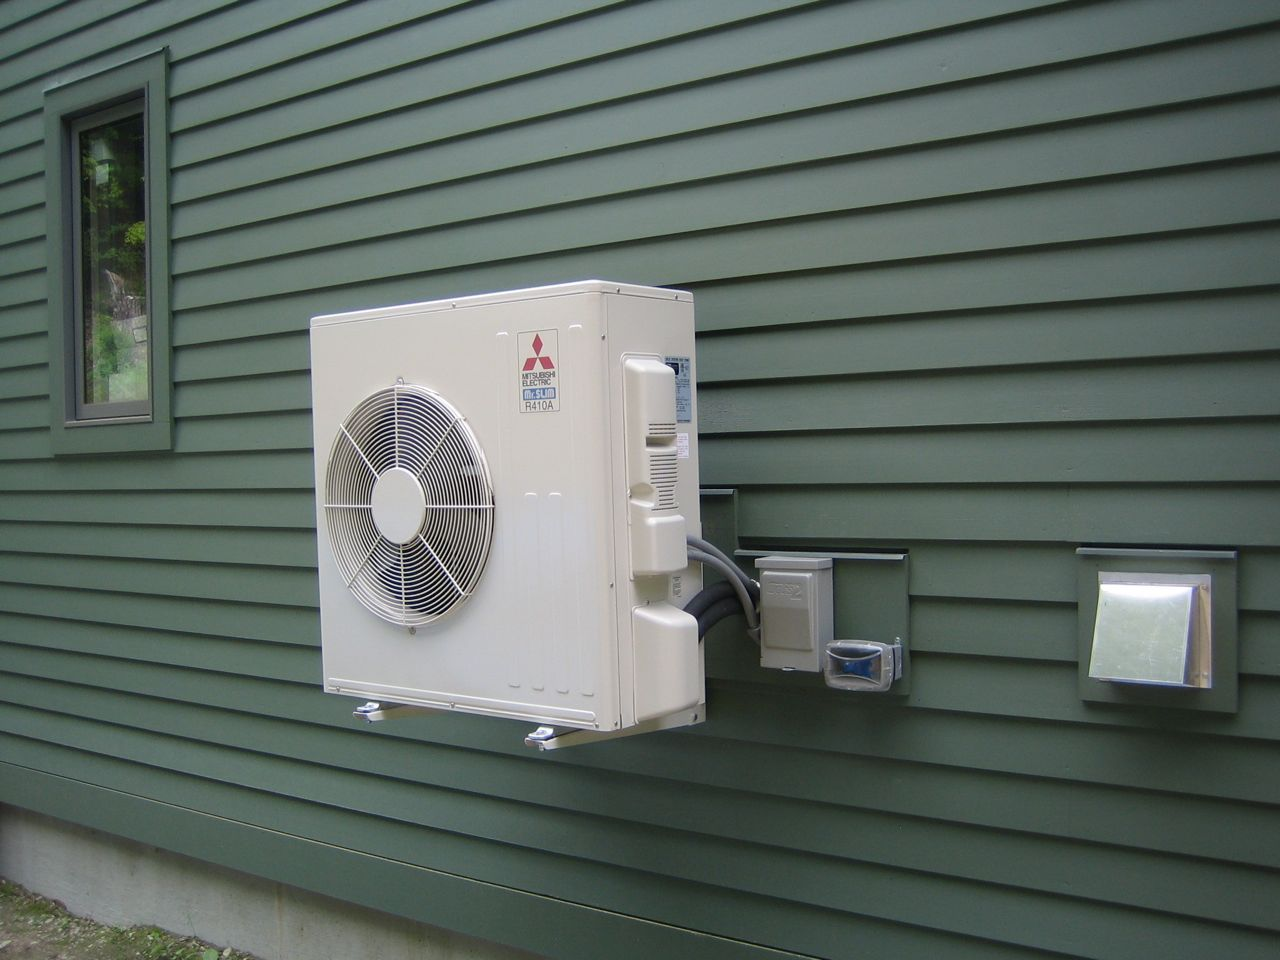 mitsubishi mini split cost Google Search Heat pump air